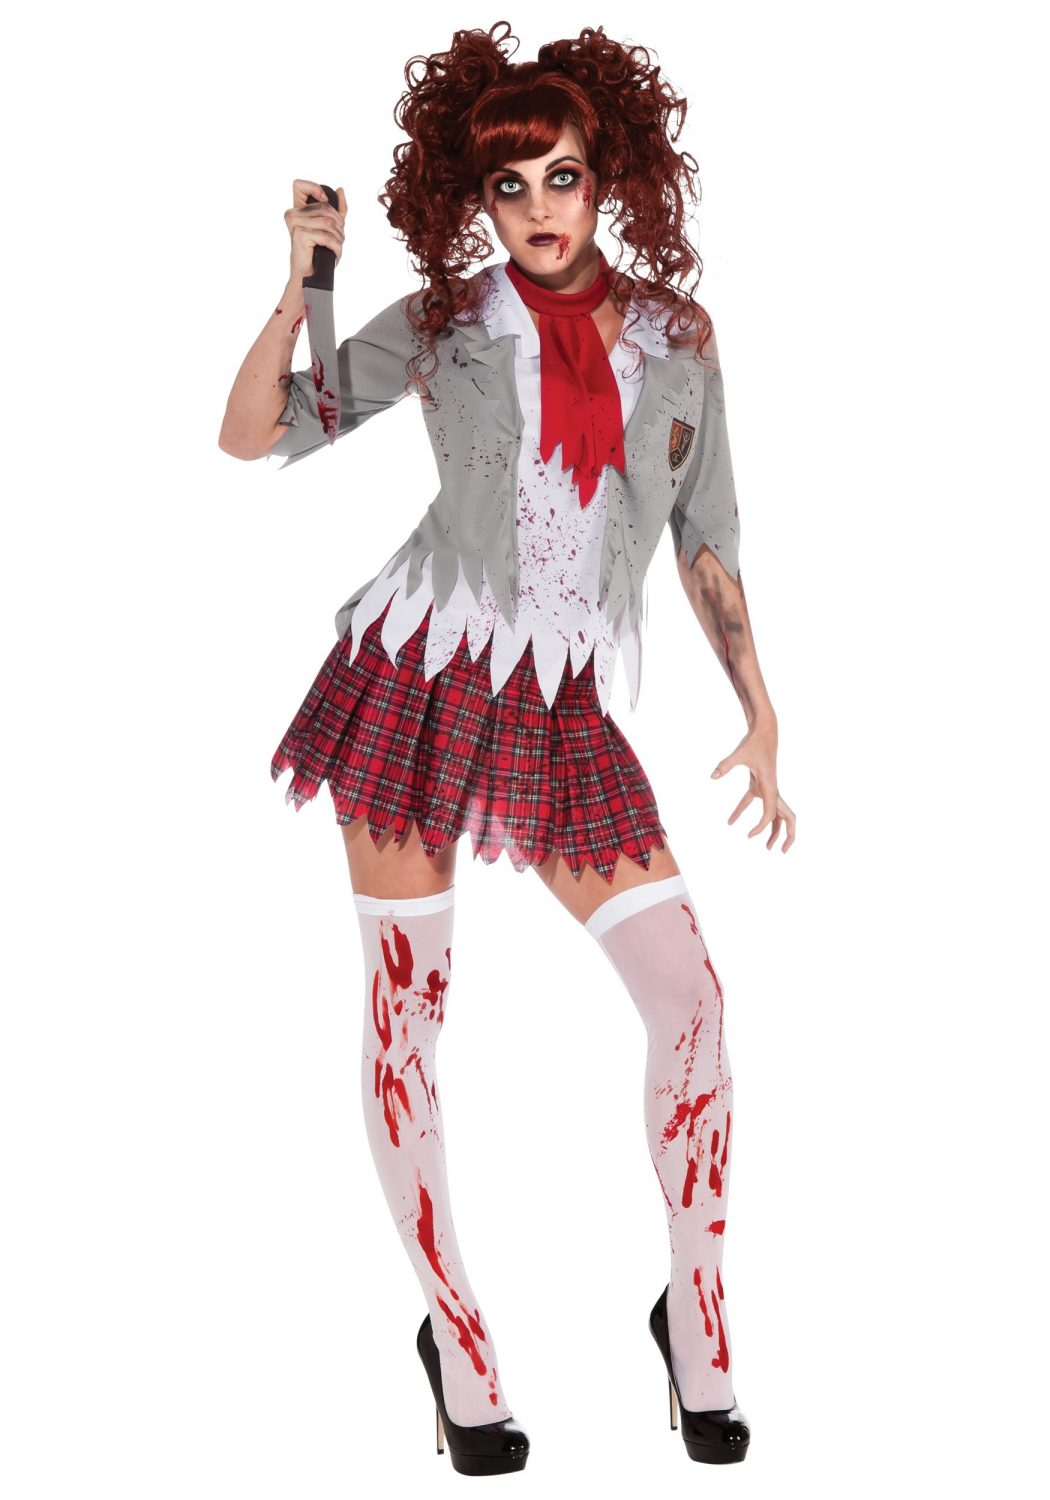 Zombie Top 10 Teenagers Halloween Costumes Trends